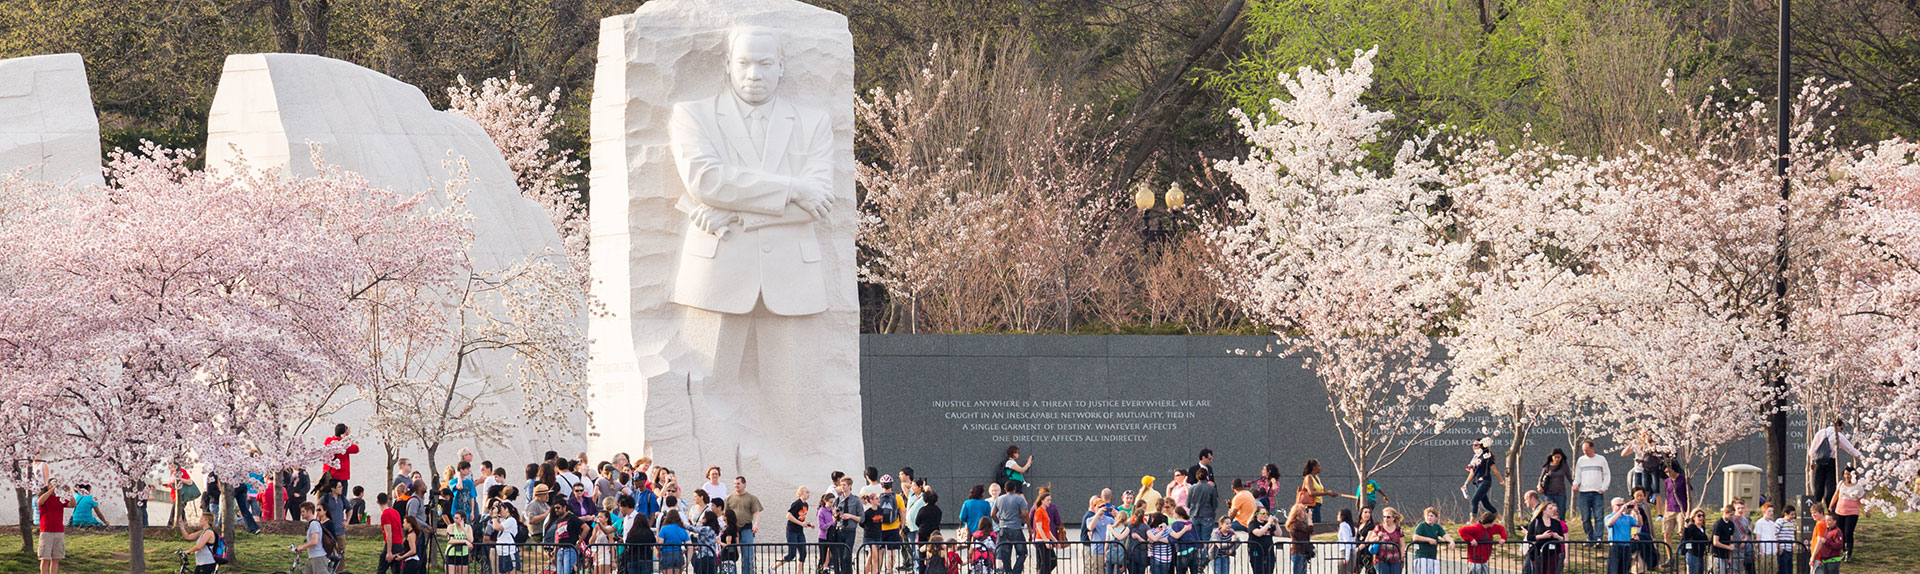 MLK Memorial in Washington, District of Columbia